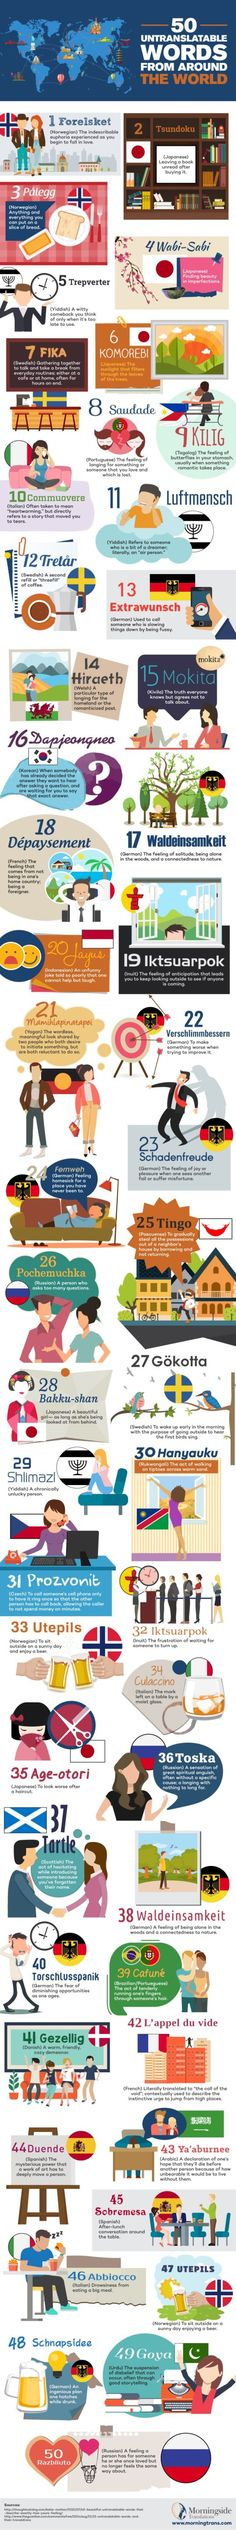 #infographic 50 untranslatable words from around the world